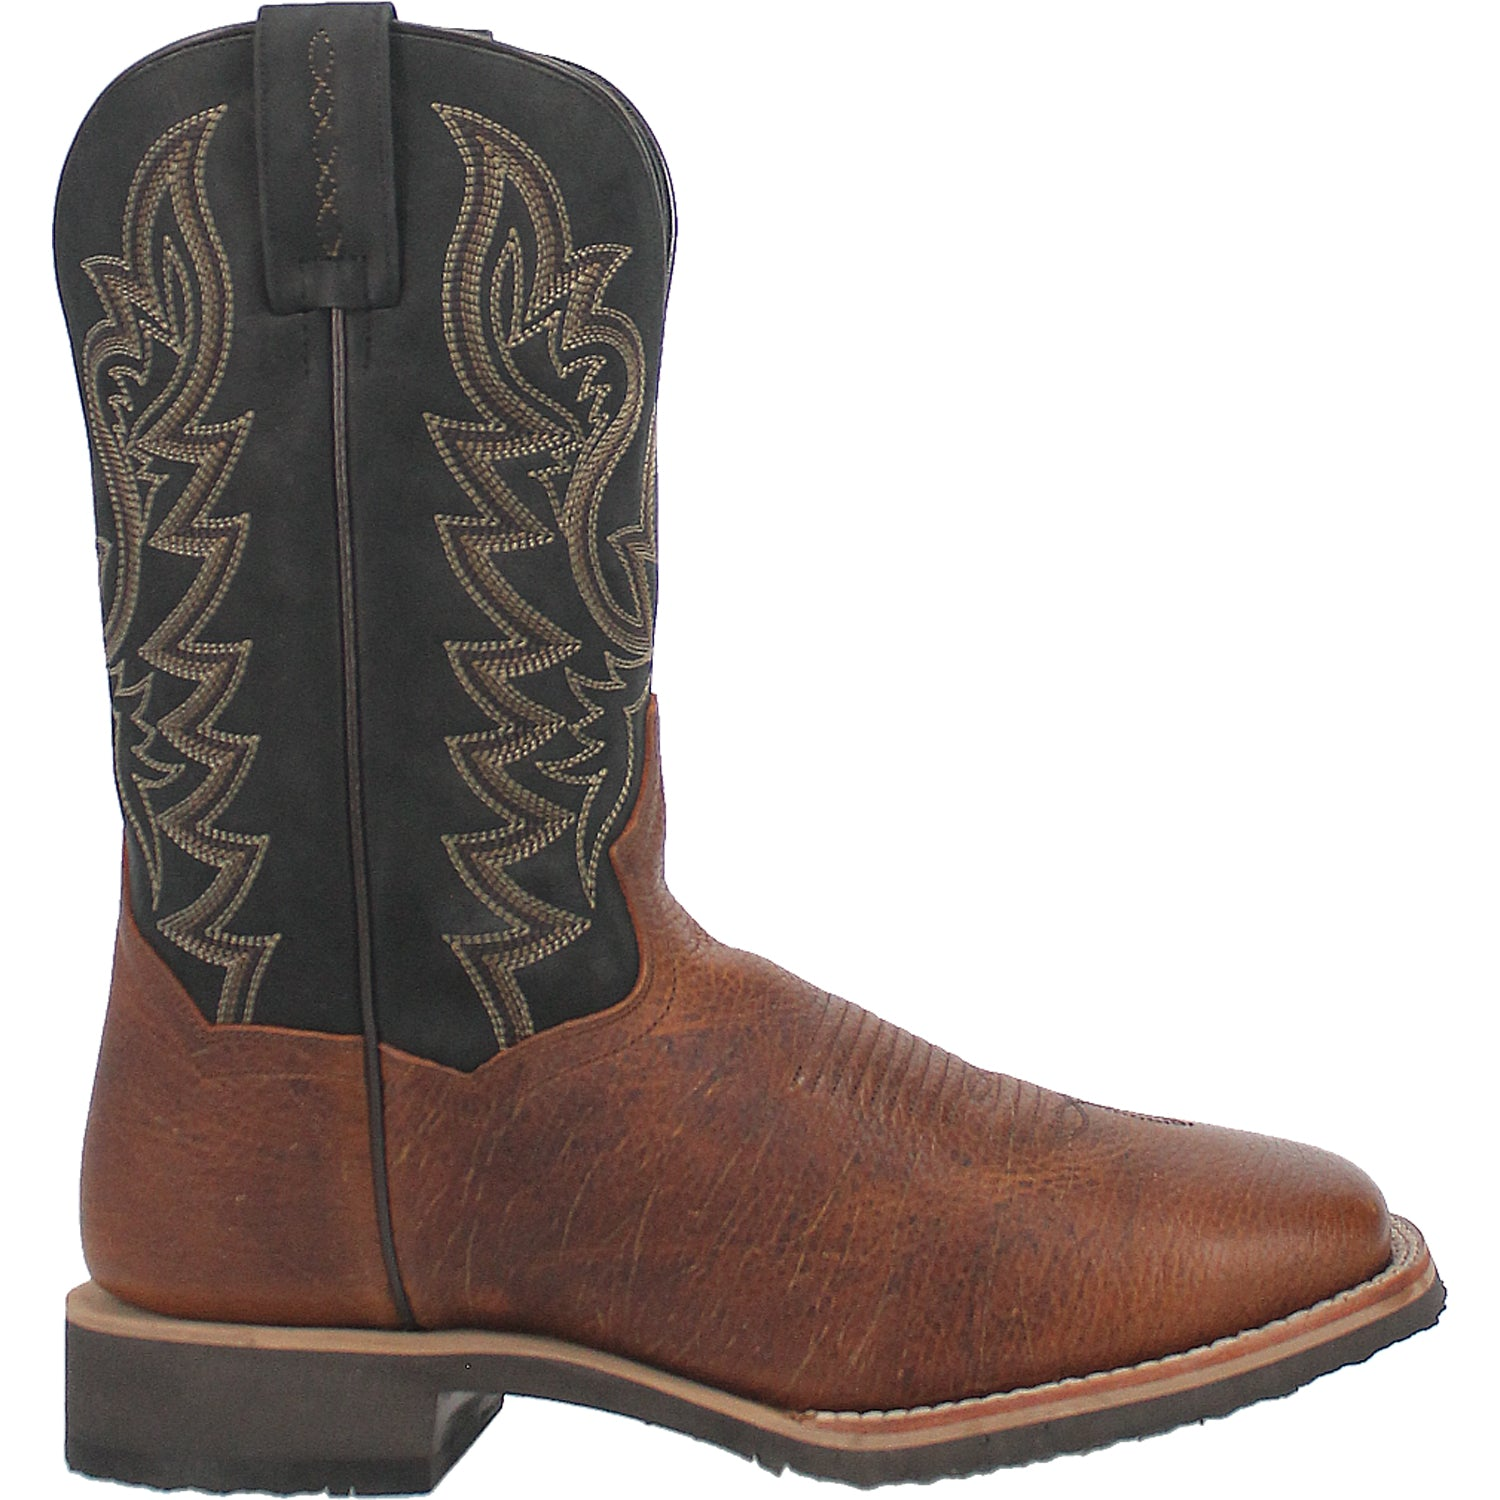 BOLDON LEATHER BOOT 16139789303850